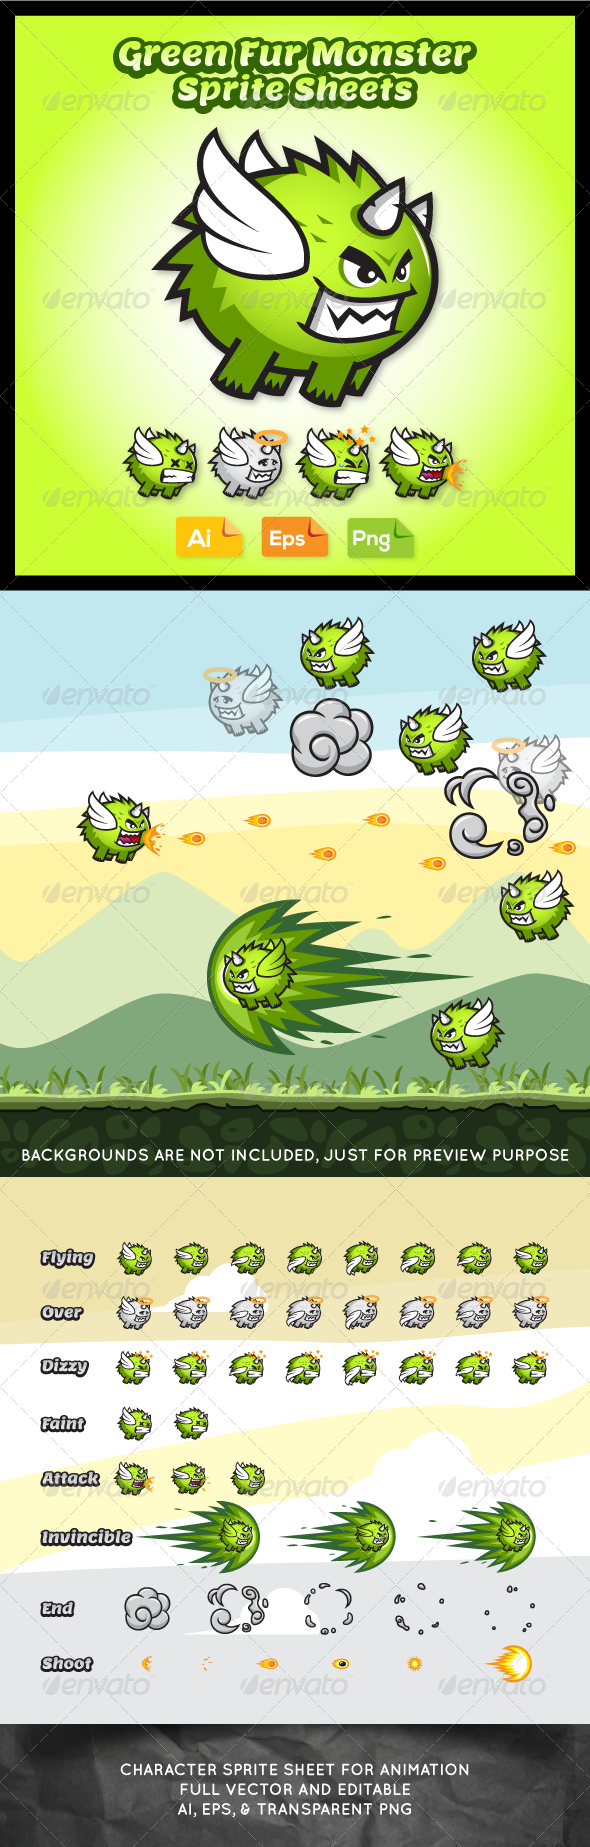 GraphicRiver Villain Game Character Monster Sprite Sheets 7618020